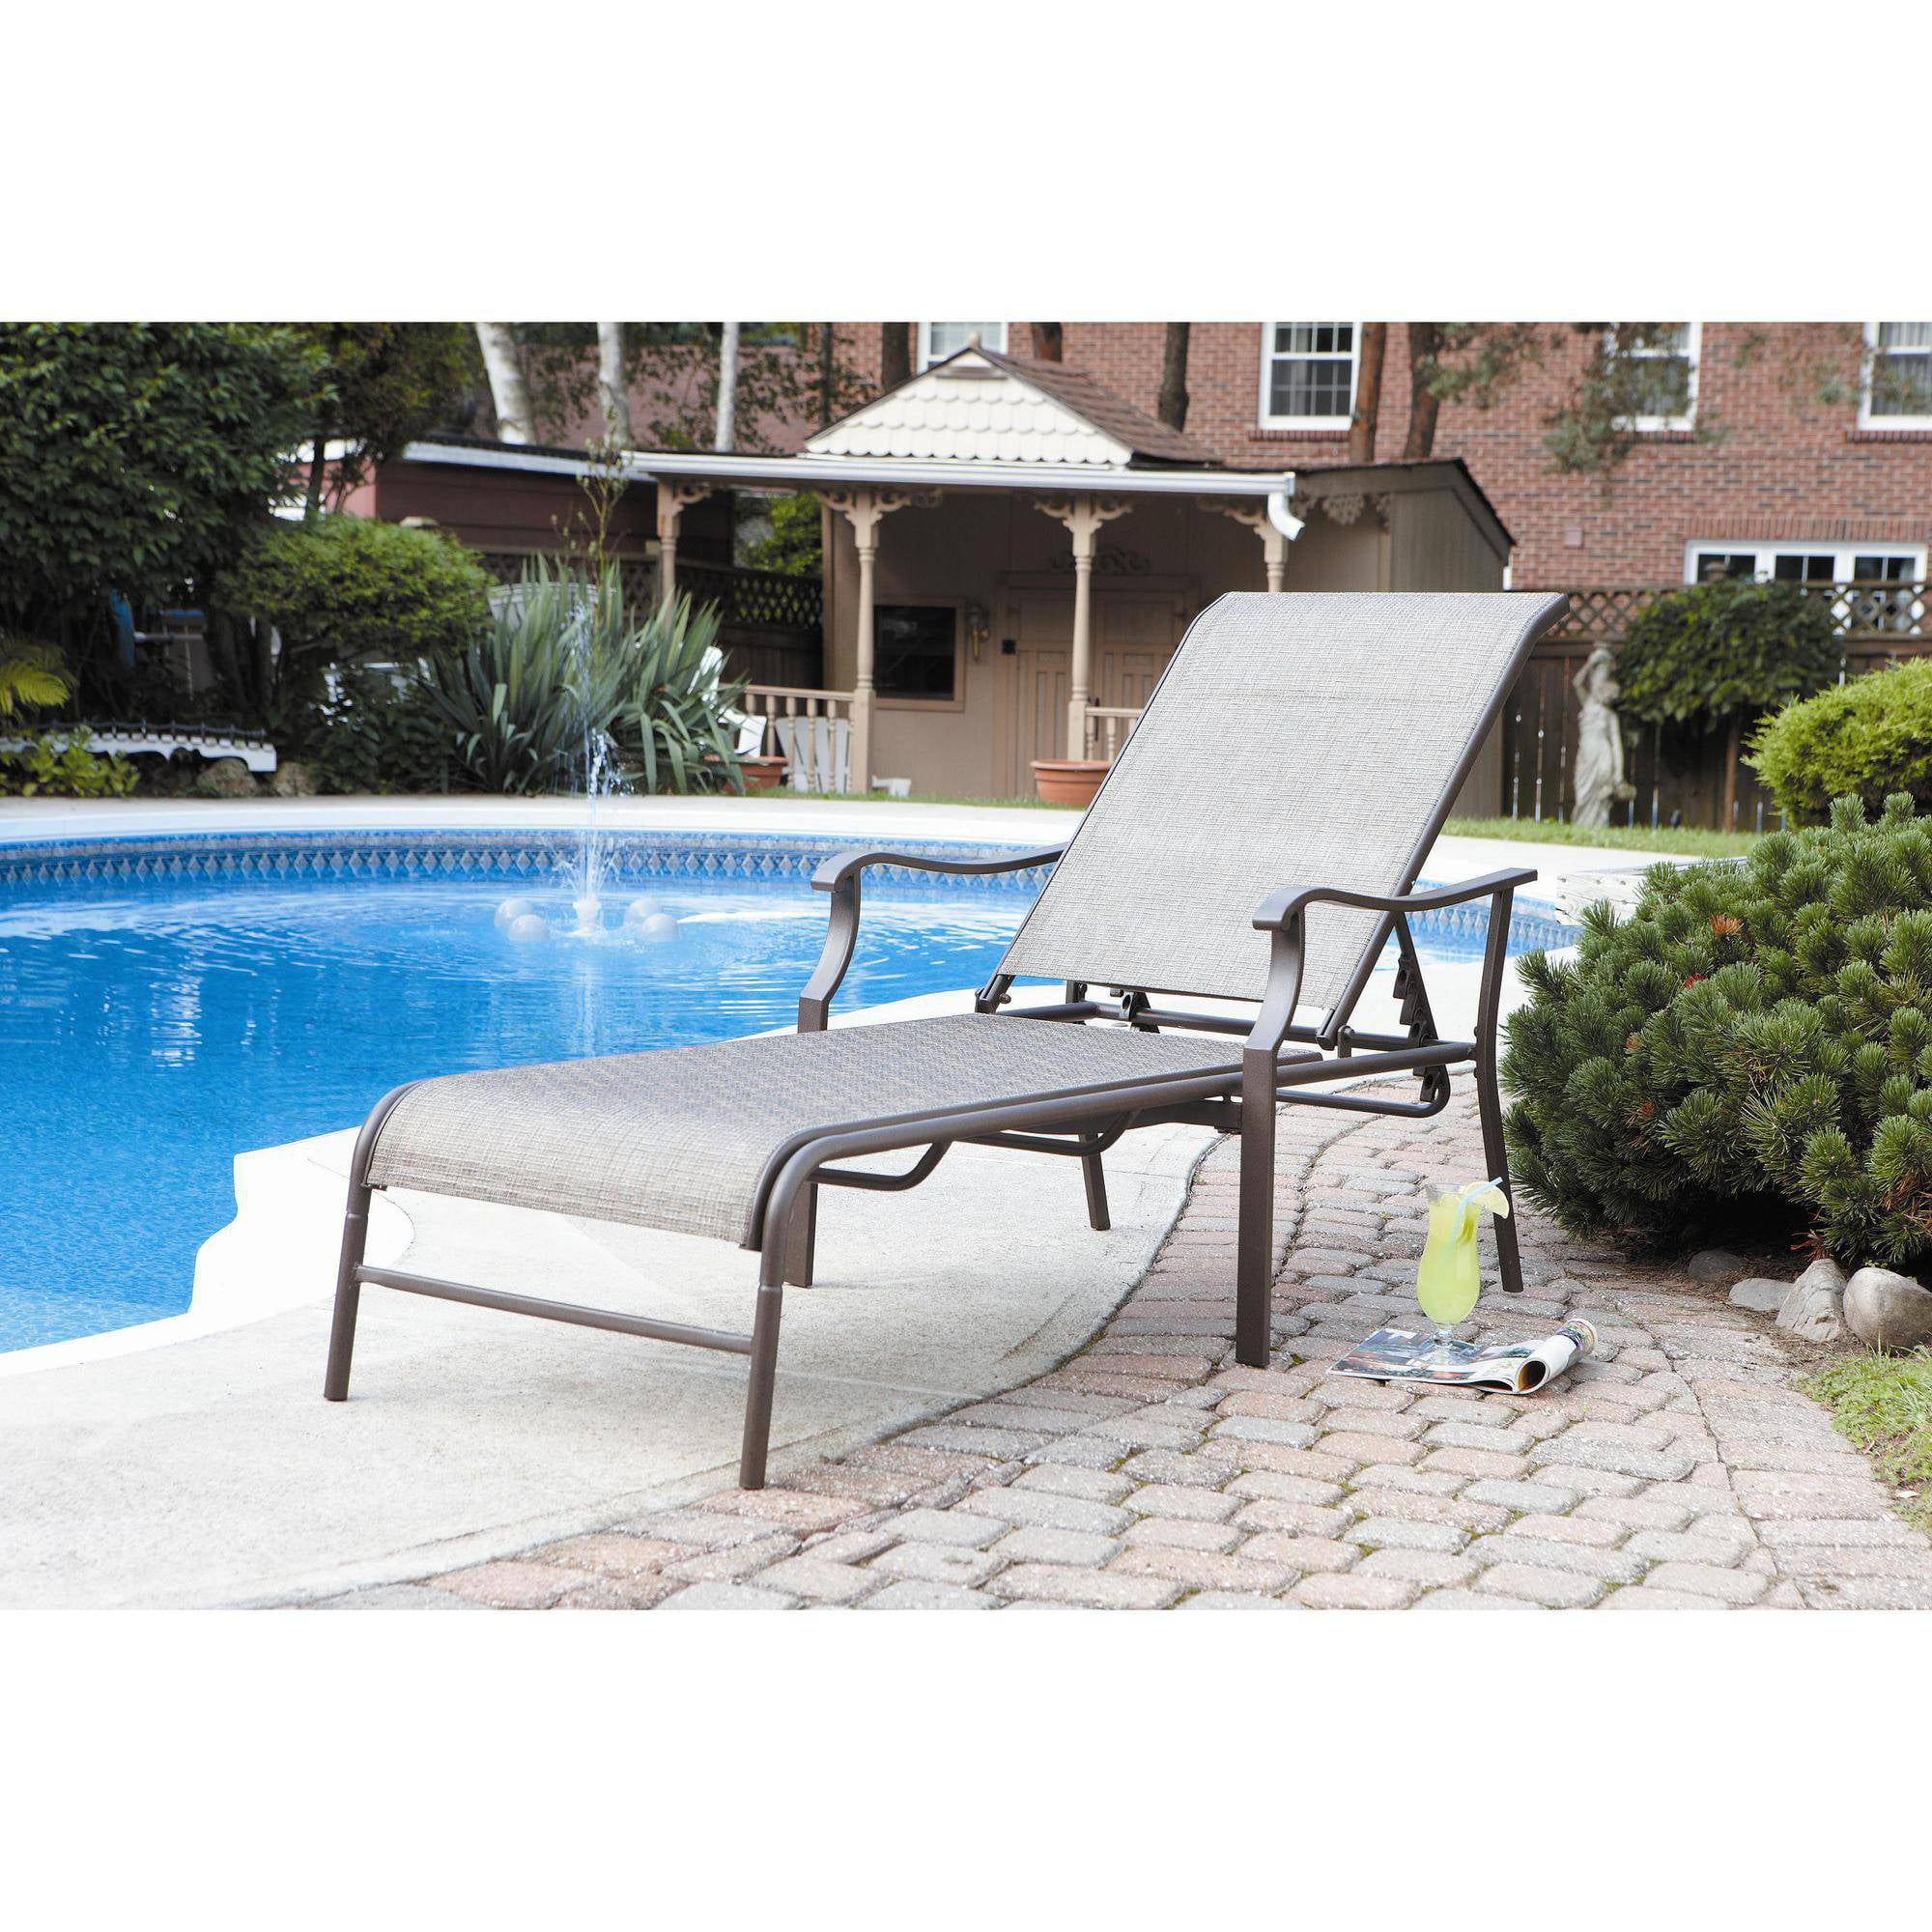 Outsunny Outdoor Patio Synthetic Rattan Wicker 3 Pc Chaise Lounge Chair Set W Side Table